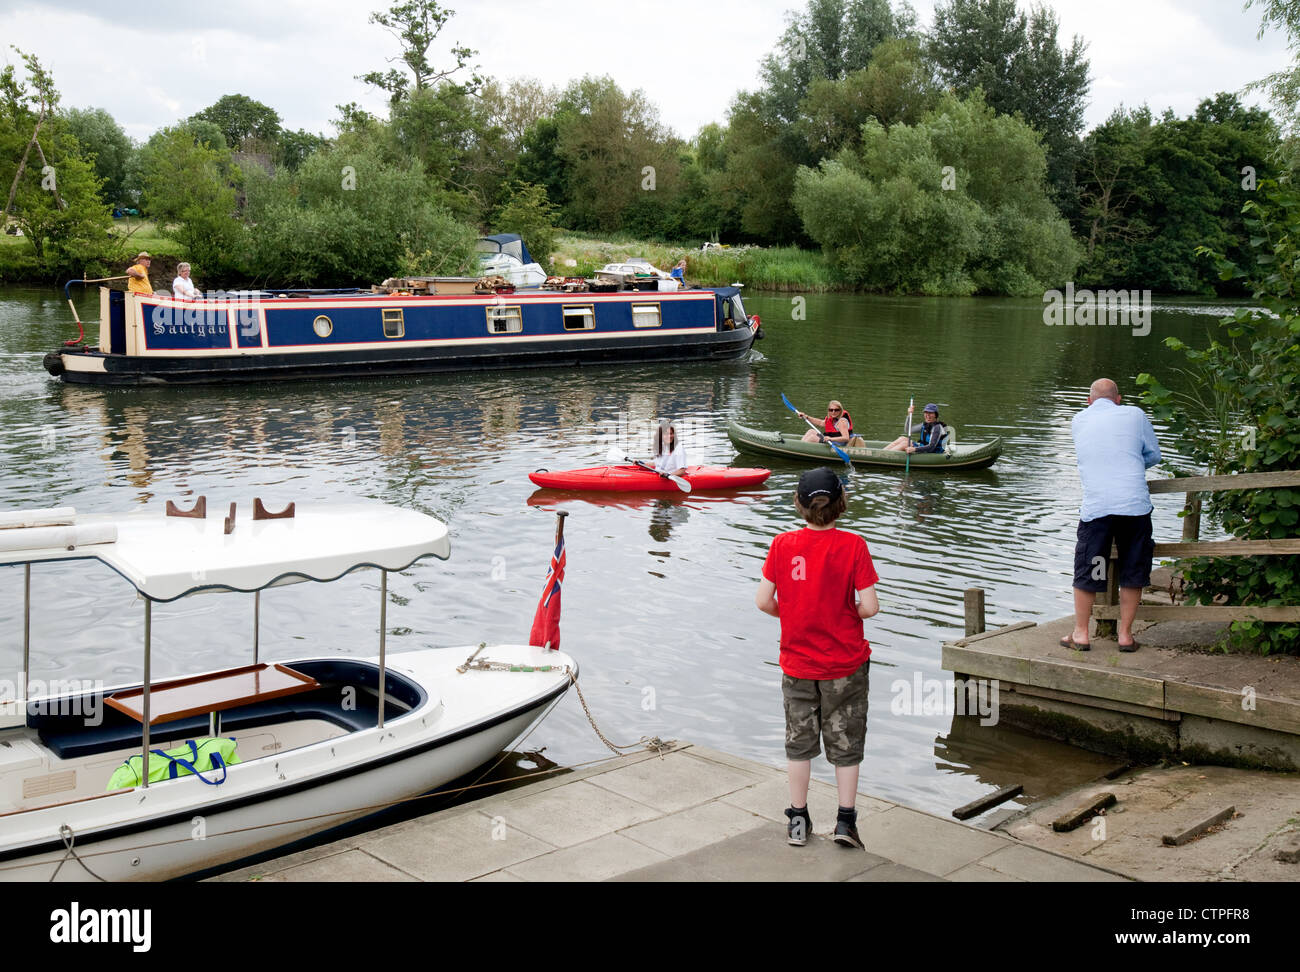 People messing around on boats on the River Thames at Wallingford Oxfordshire UK - Stock Image